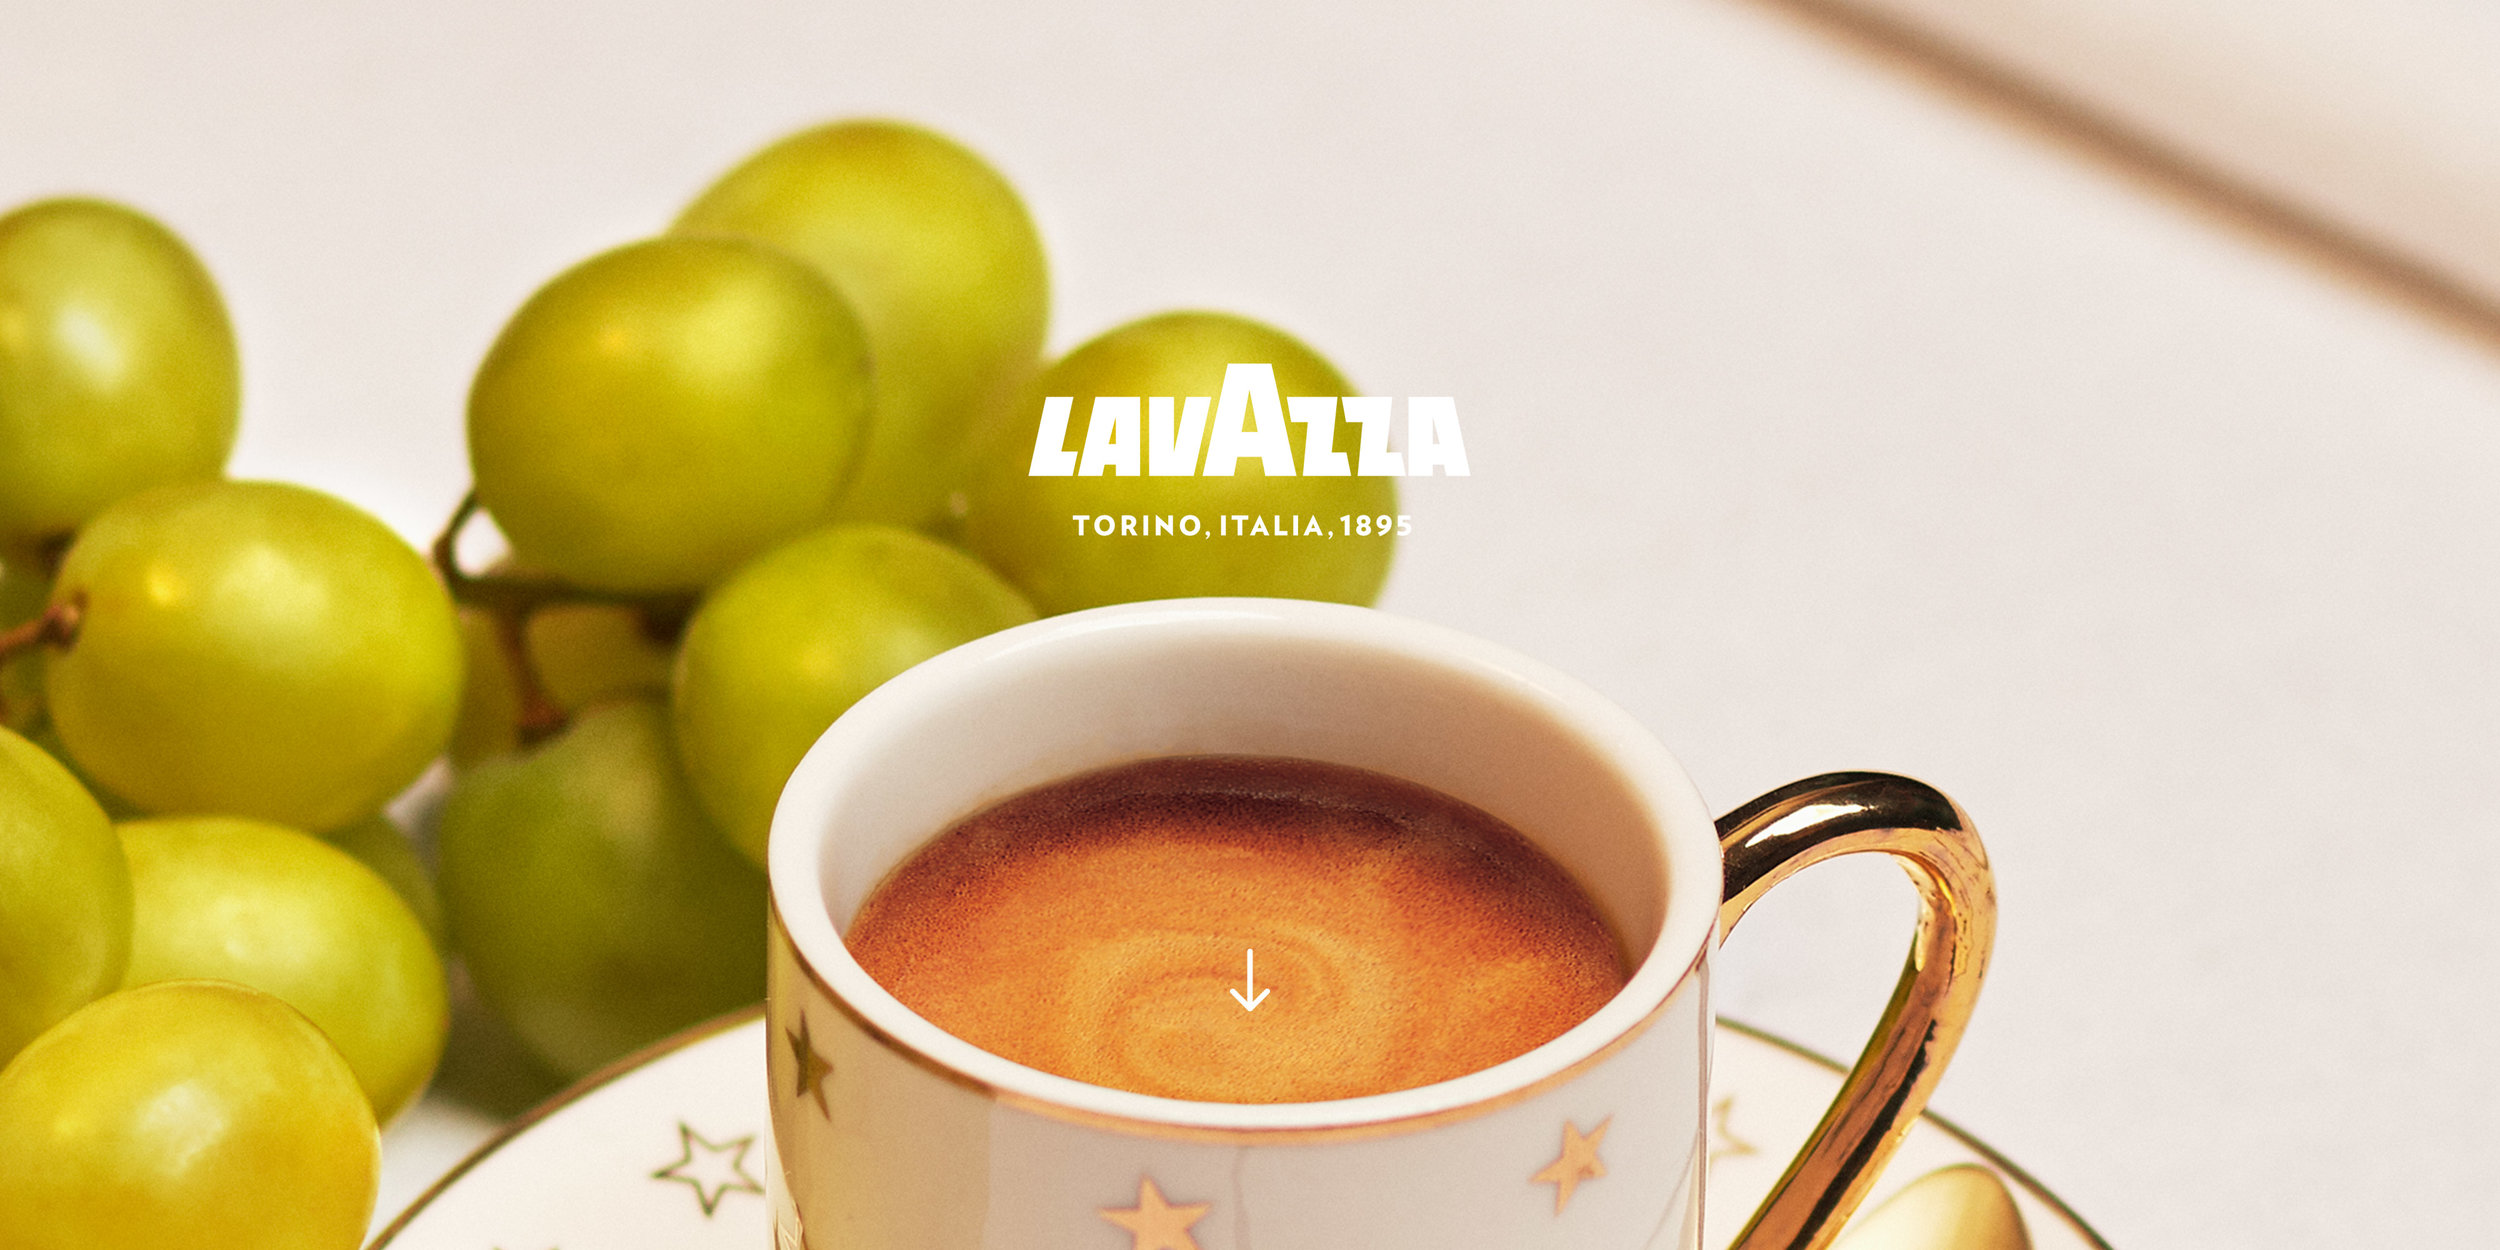 Lavazza_Work_Post_Header_4x2_B.jpg